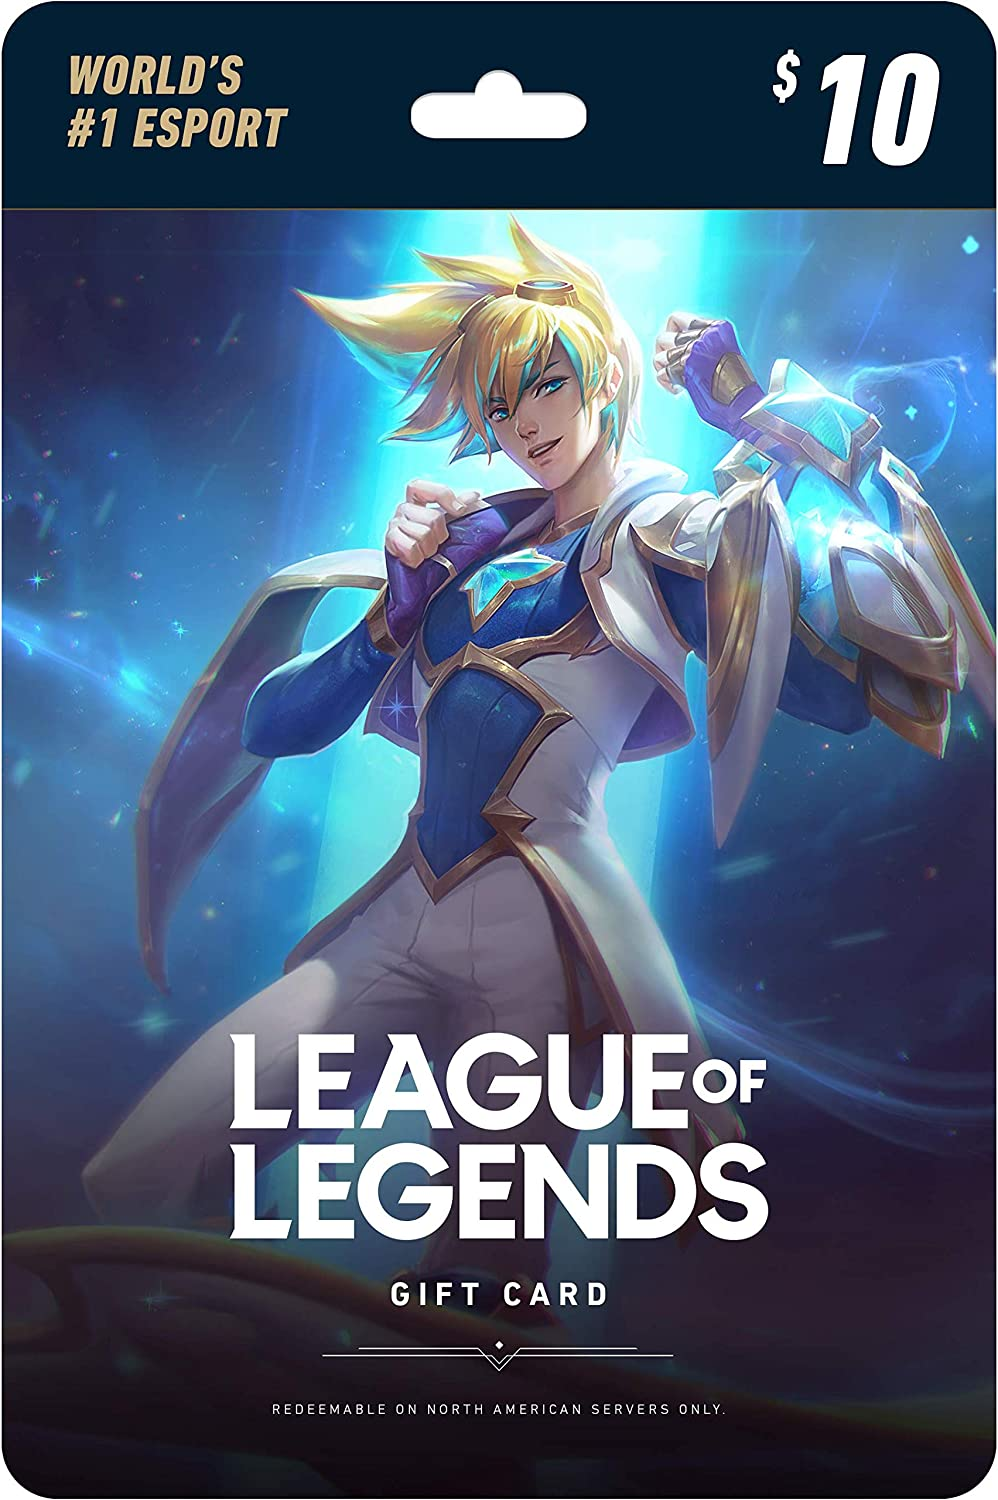 Amazon.com: League of Legends $10 Gift Card - NA Server Only ...